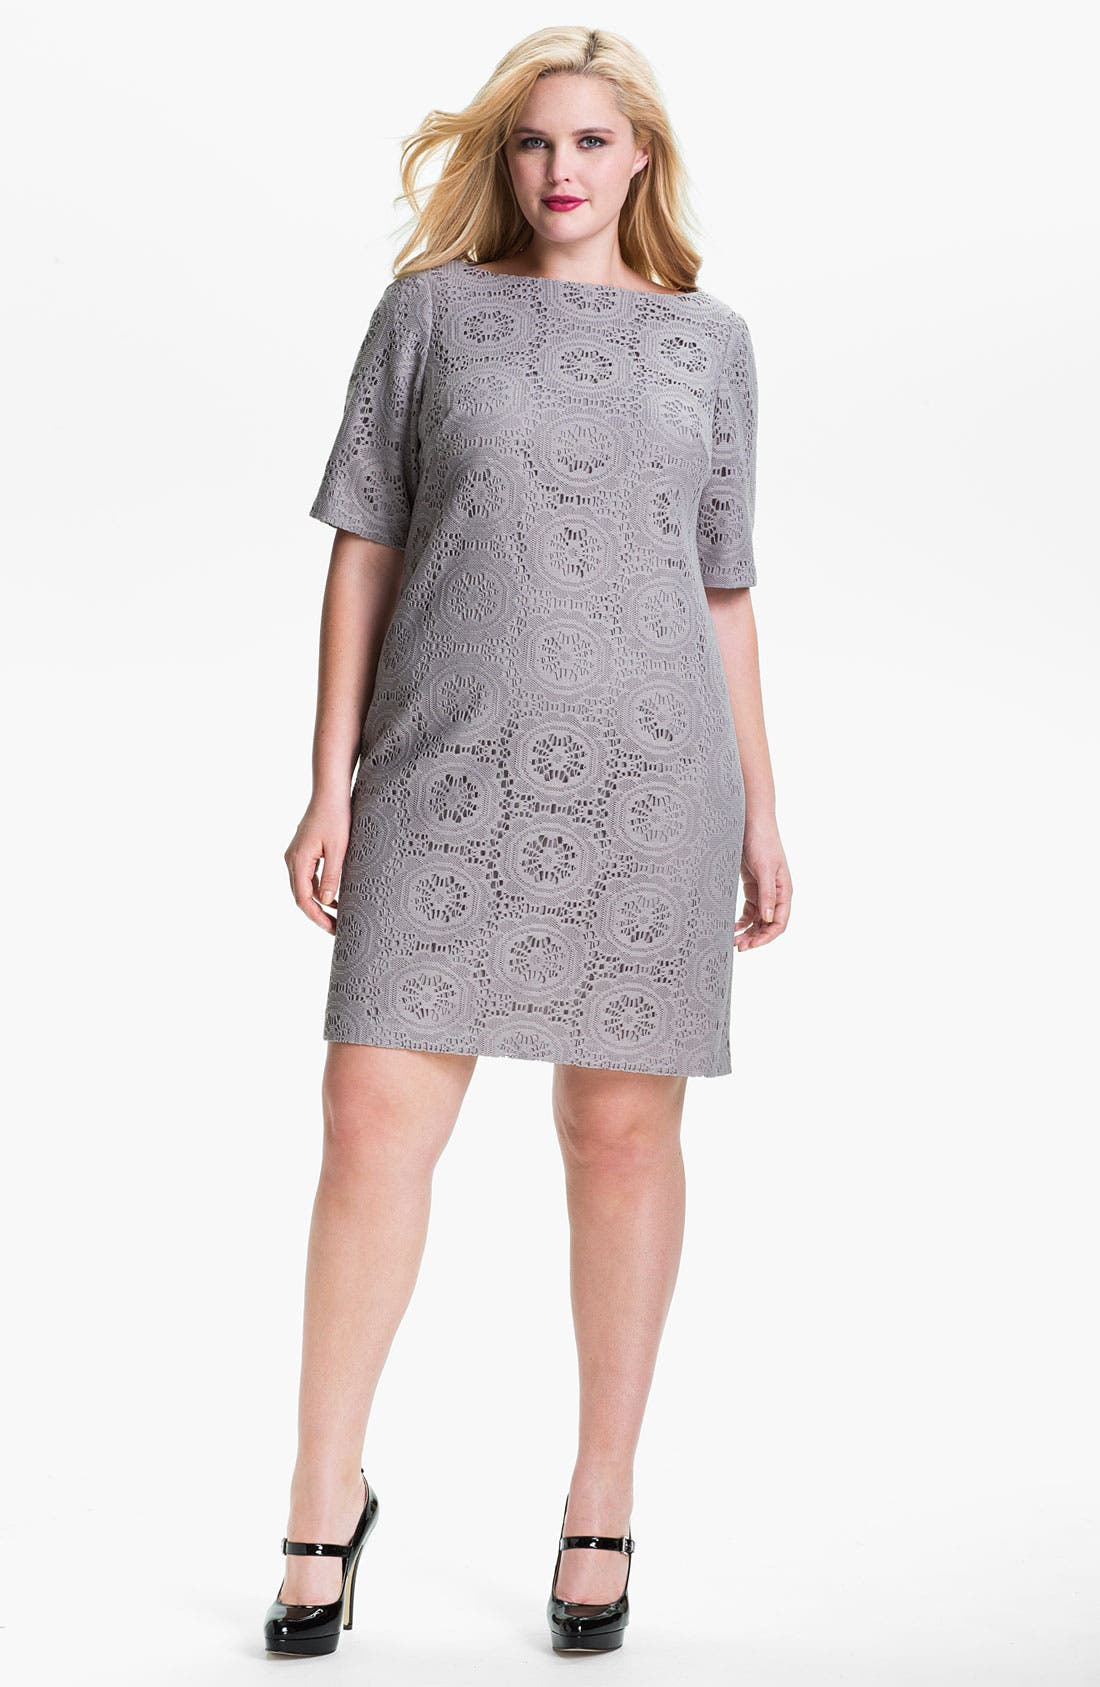 Alternate Image 1 Selected - Adrianna Papell Crochet Overlay Sheath Dress (Plus)